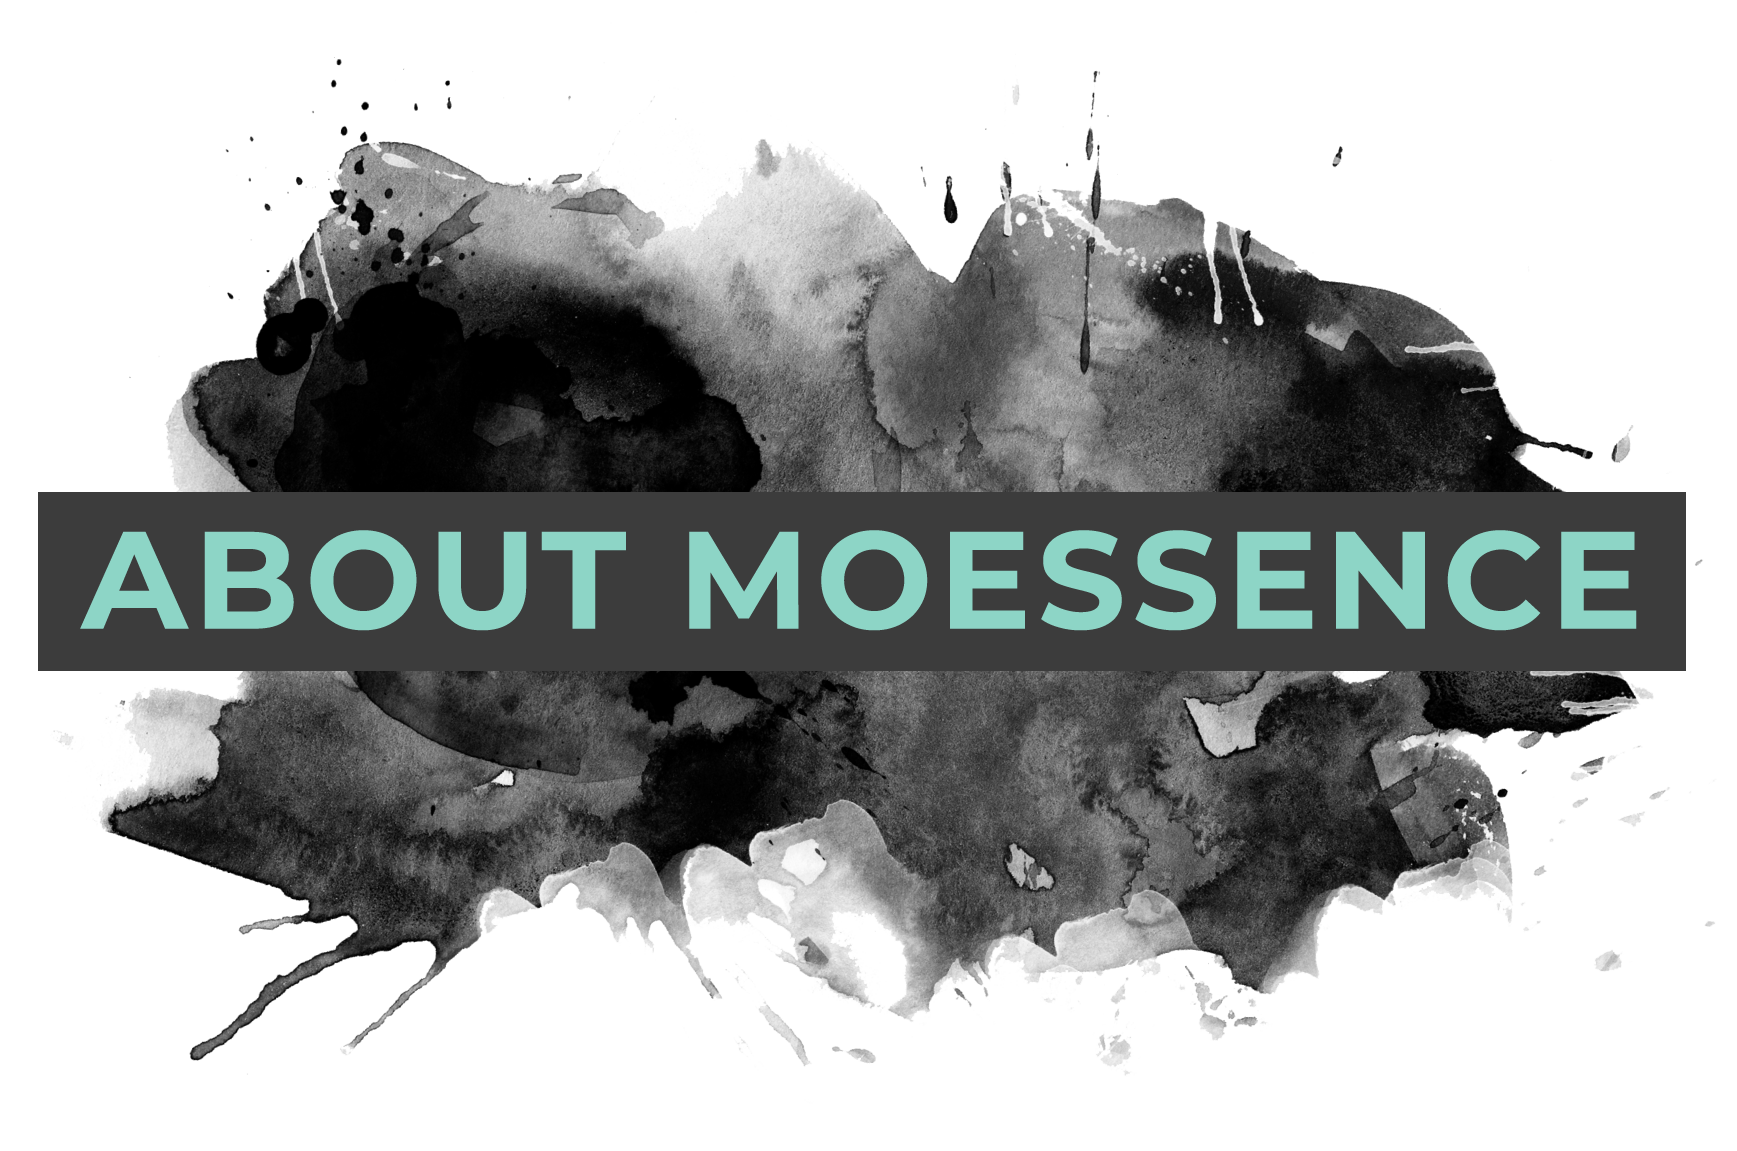 About-moessence.png